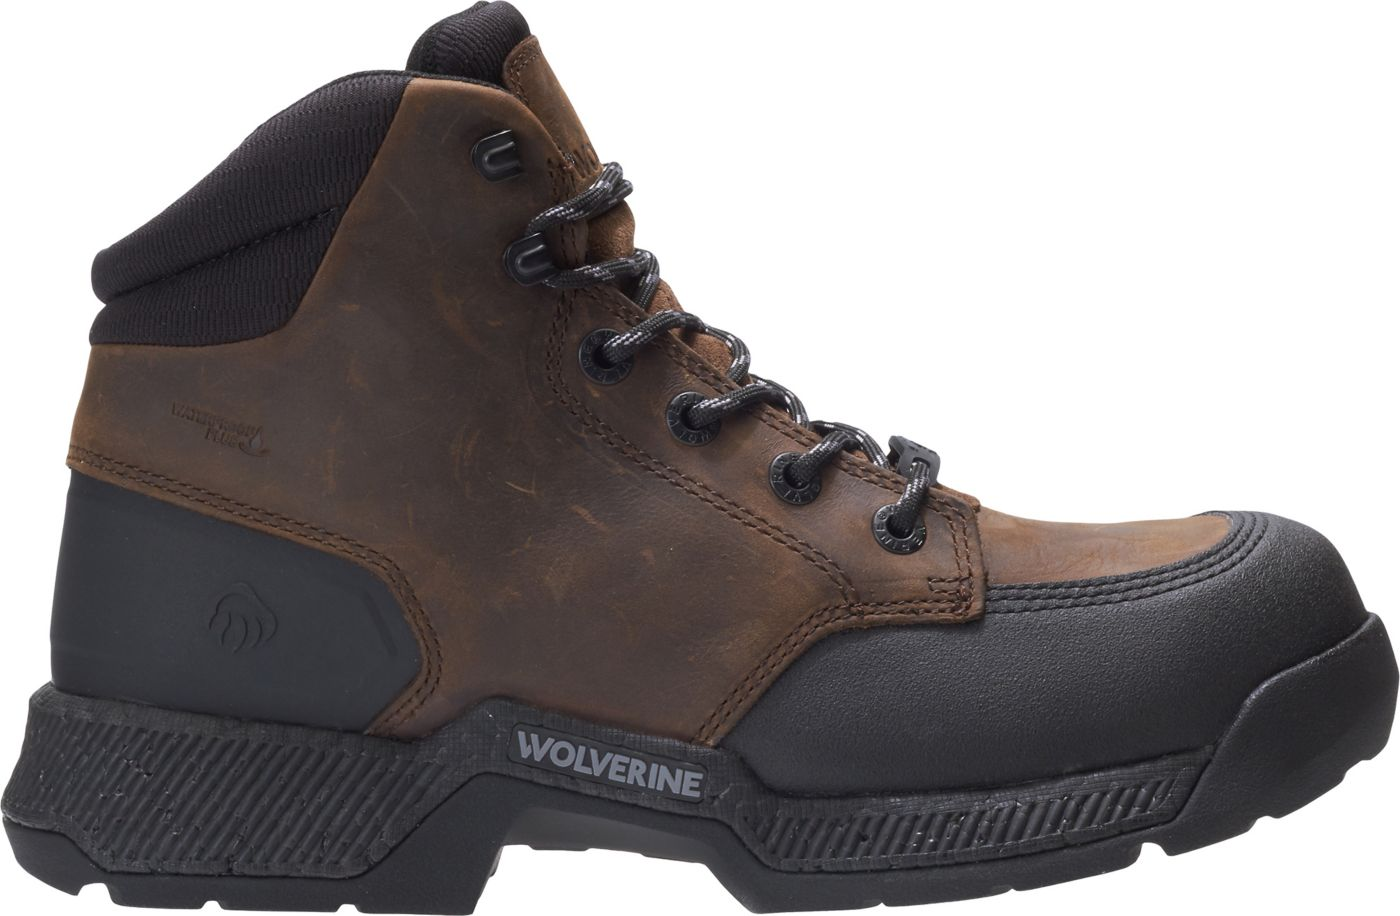 Wolverine Men's Carom 6'' Waterproof Composite Toe Work Boots